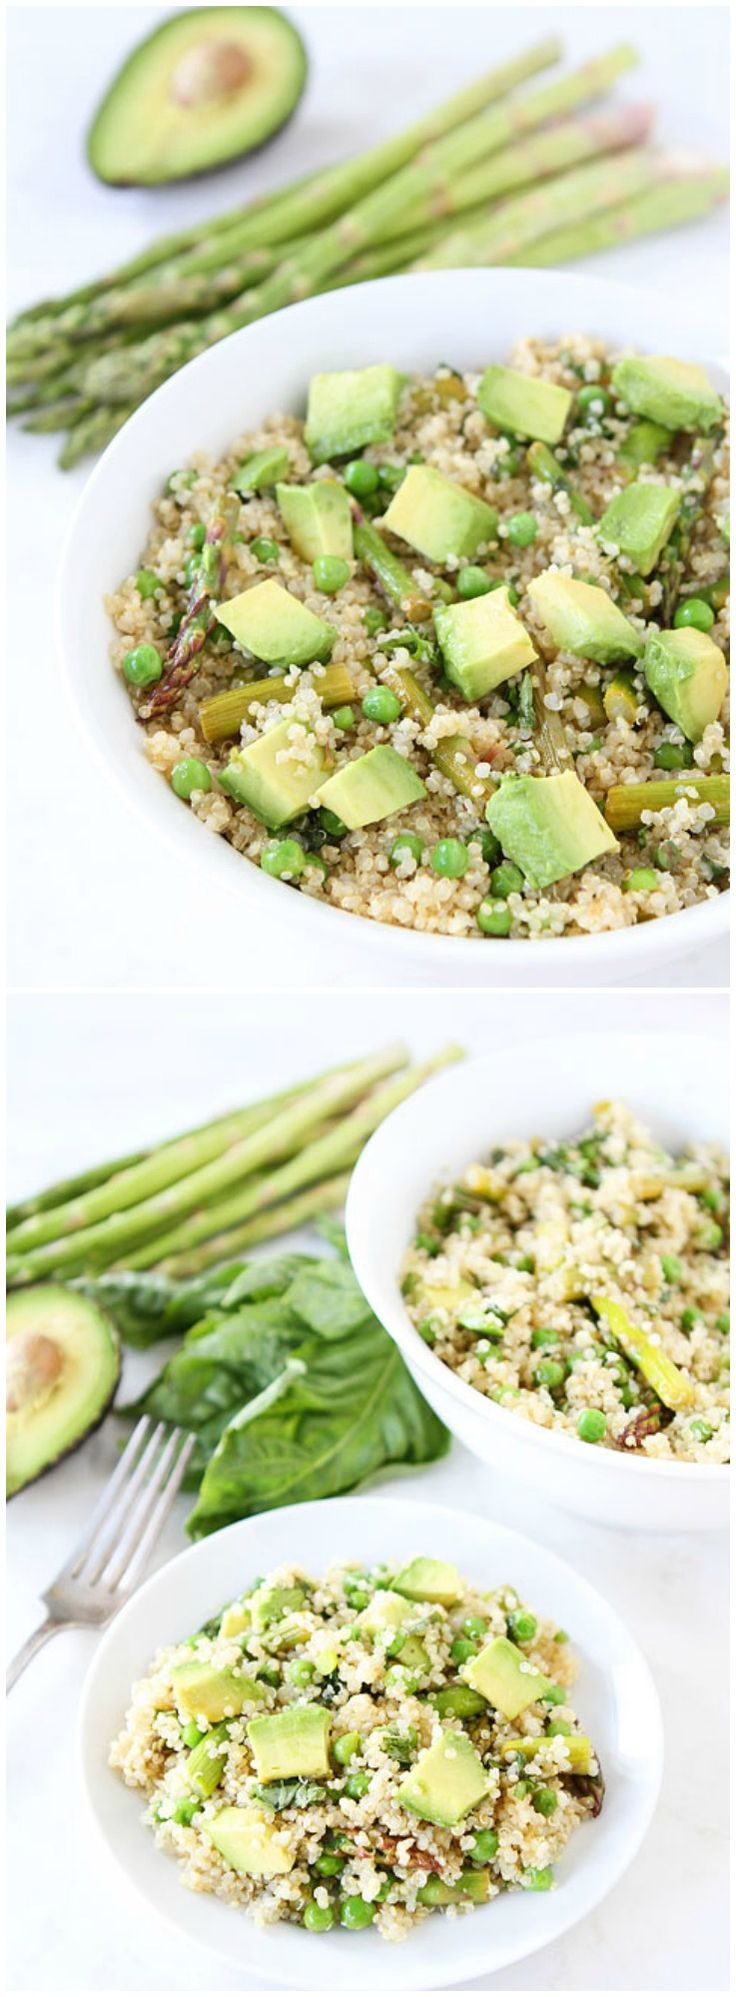 Spring Quinoa Salad Recipe on twopeasandtheirpod.com Quinoa salad with asparagus, peas, avocado, and a simple lemon basil dressing. We LOVE this healthy salad!